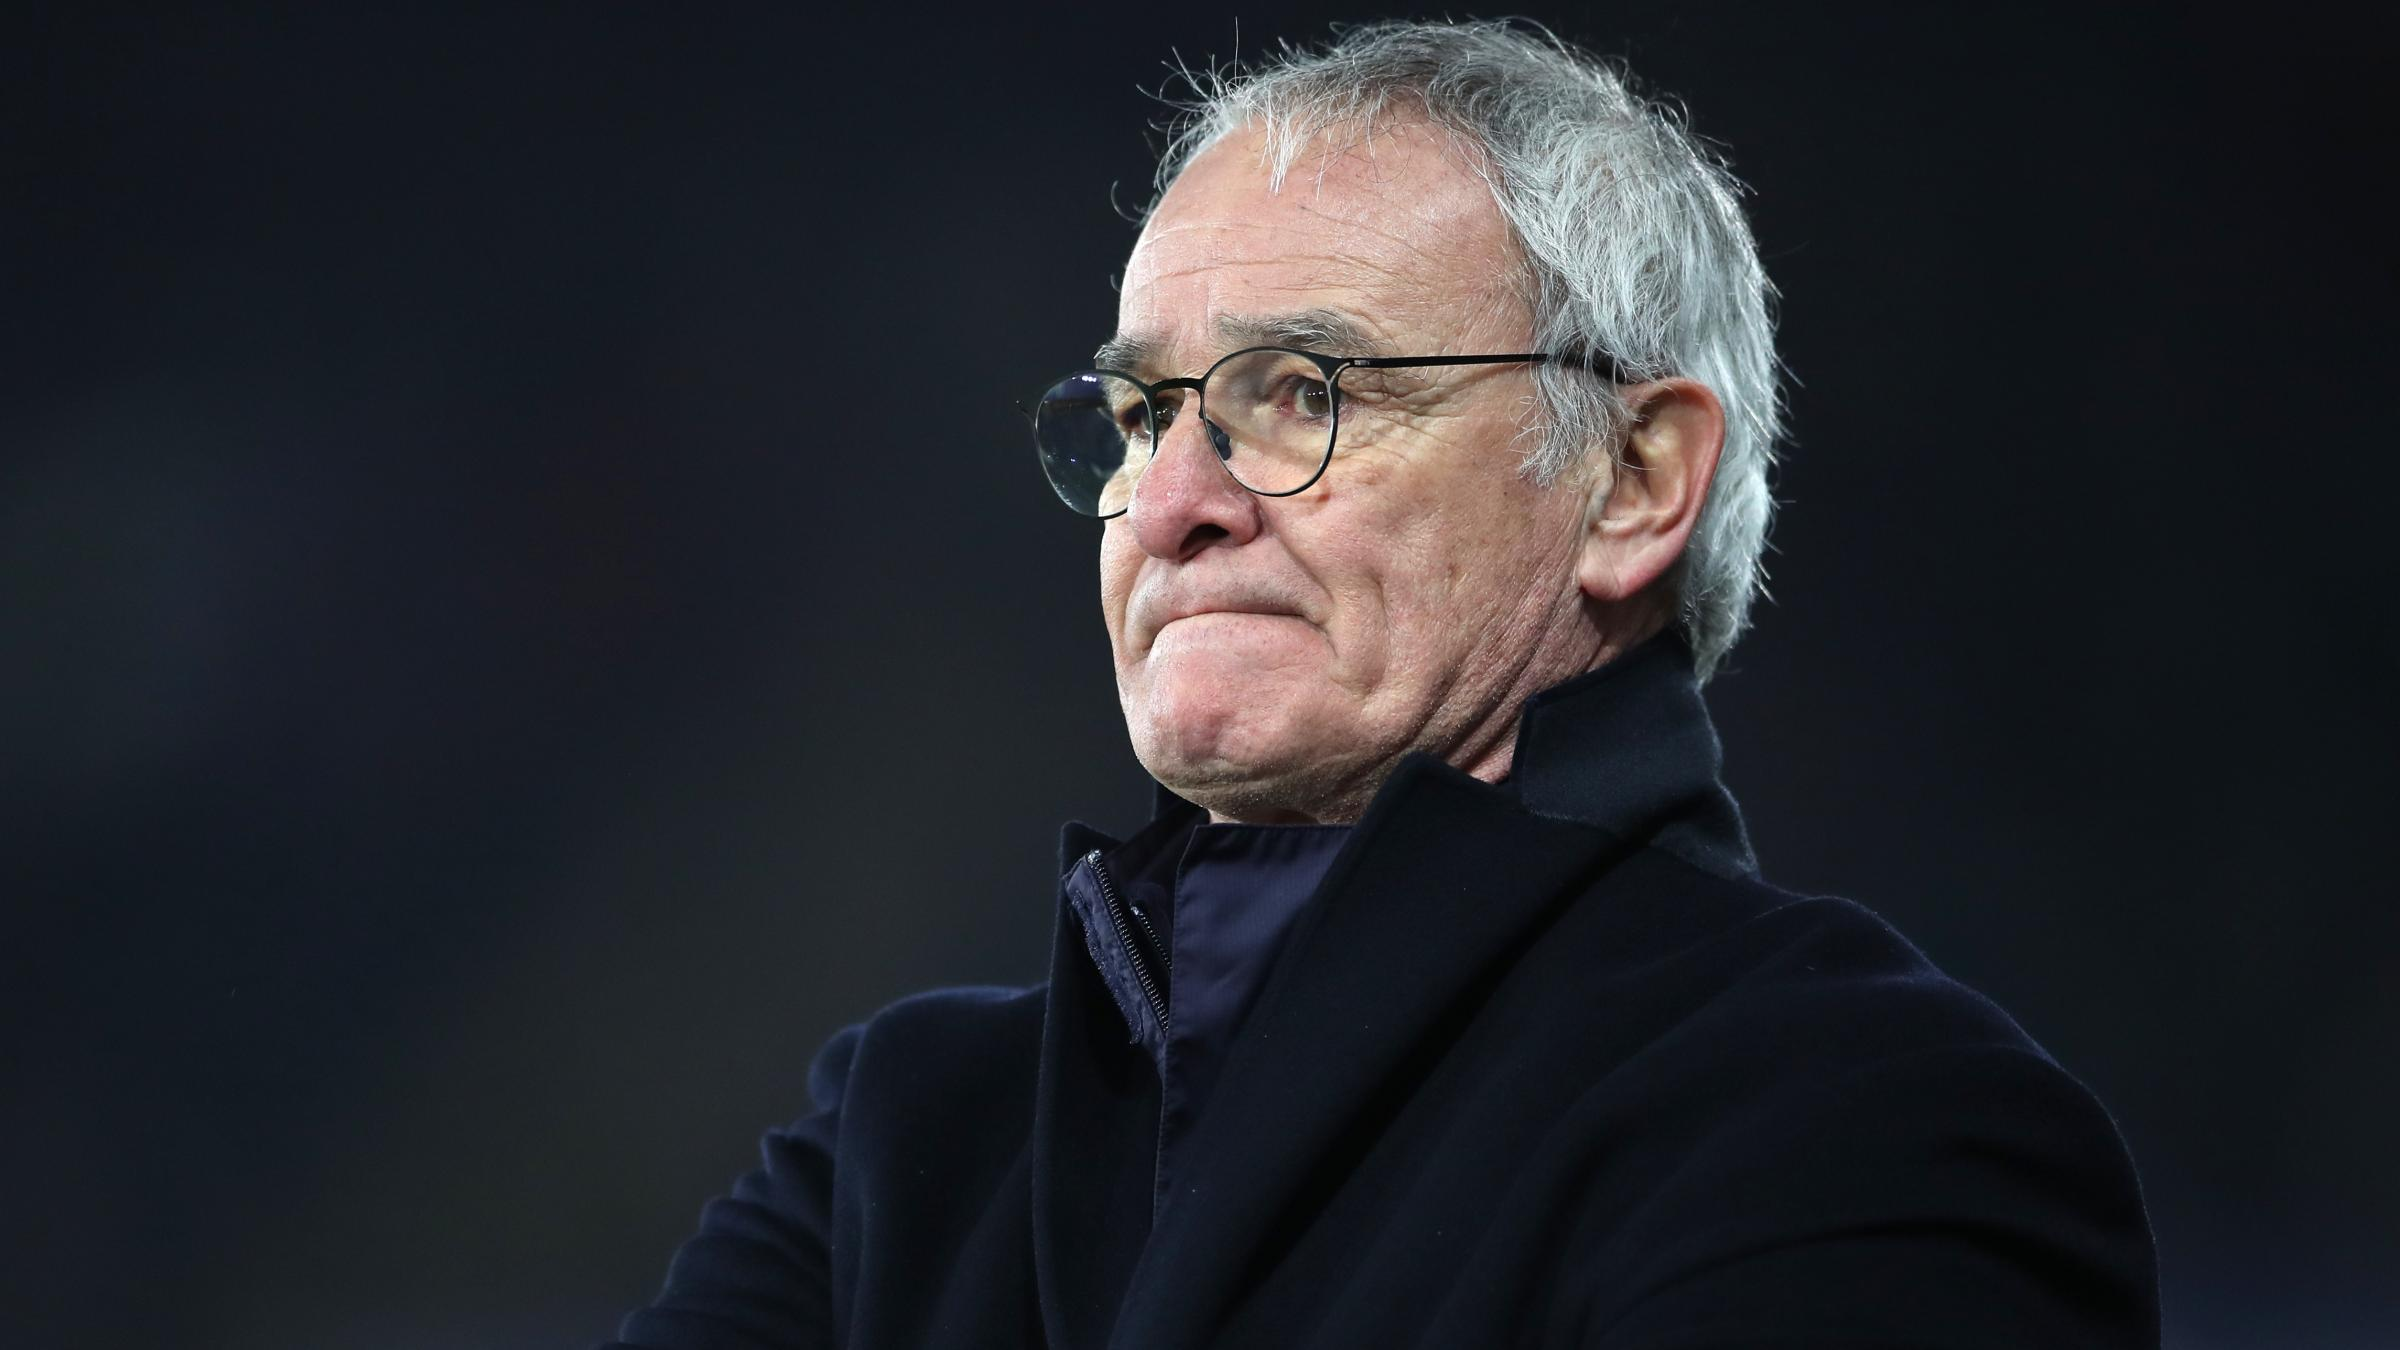 Nantes : Ligue 1 club confirm Ranieri as new coach